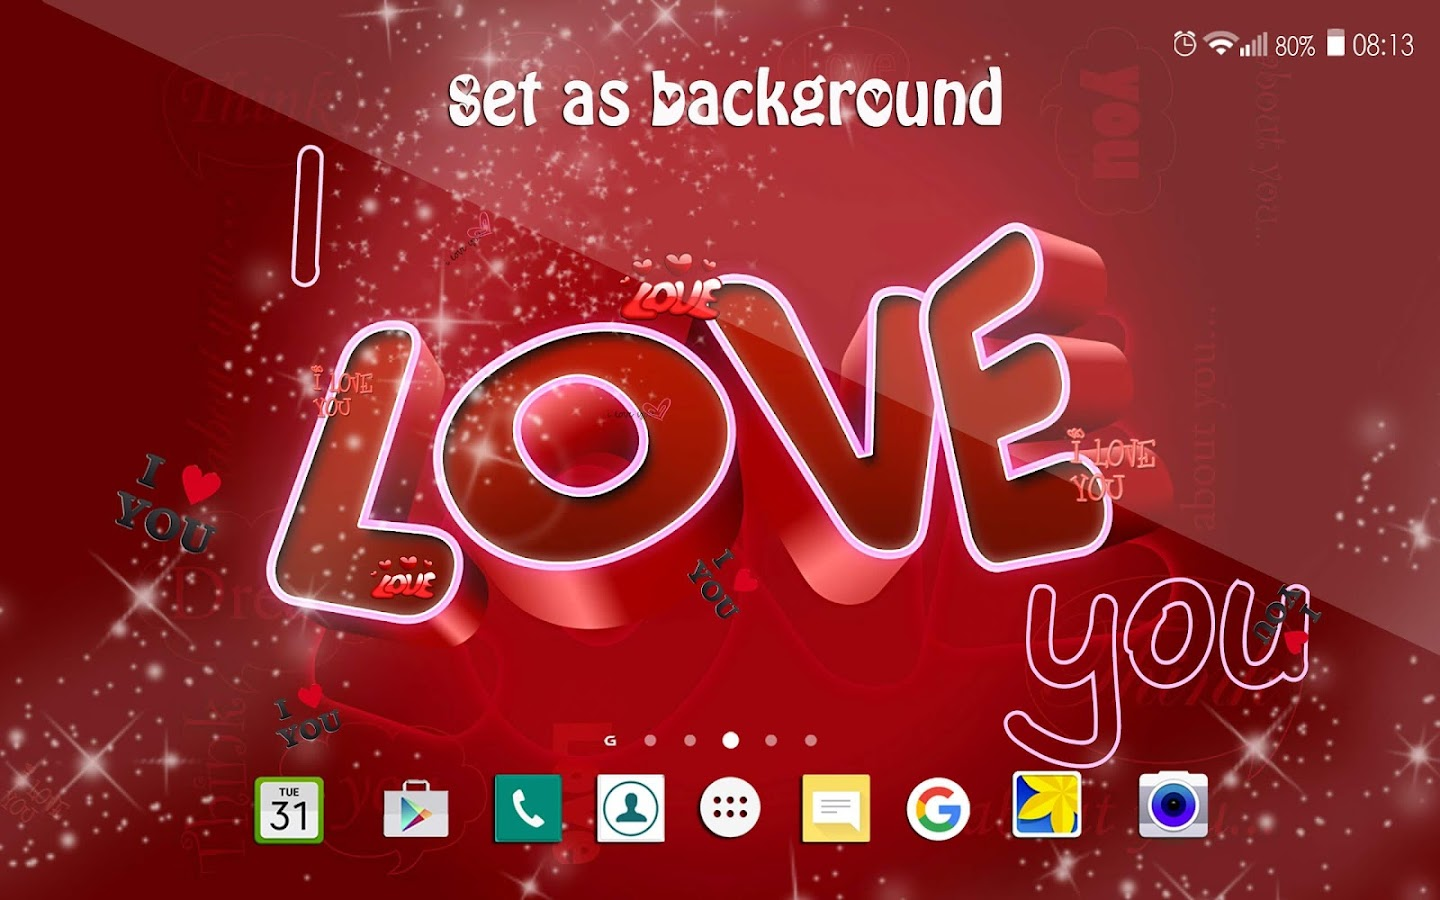 Wallpaper I Love You Live : I Love You Live Wallpaper ?? Romantic Images - Android Apps on Google Play